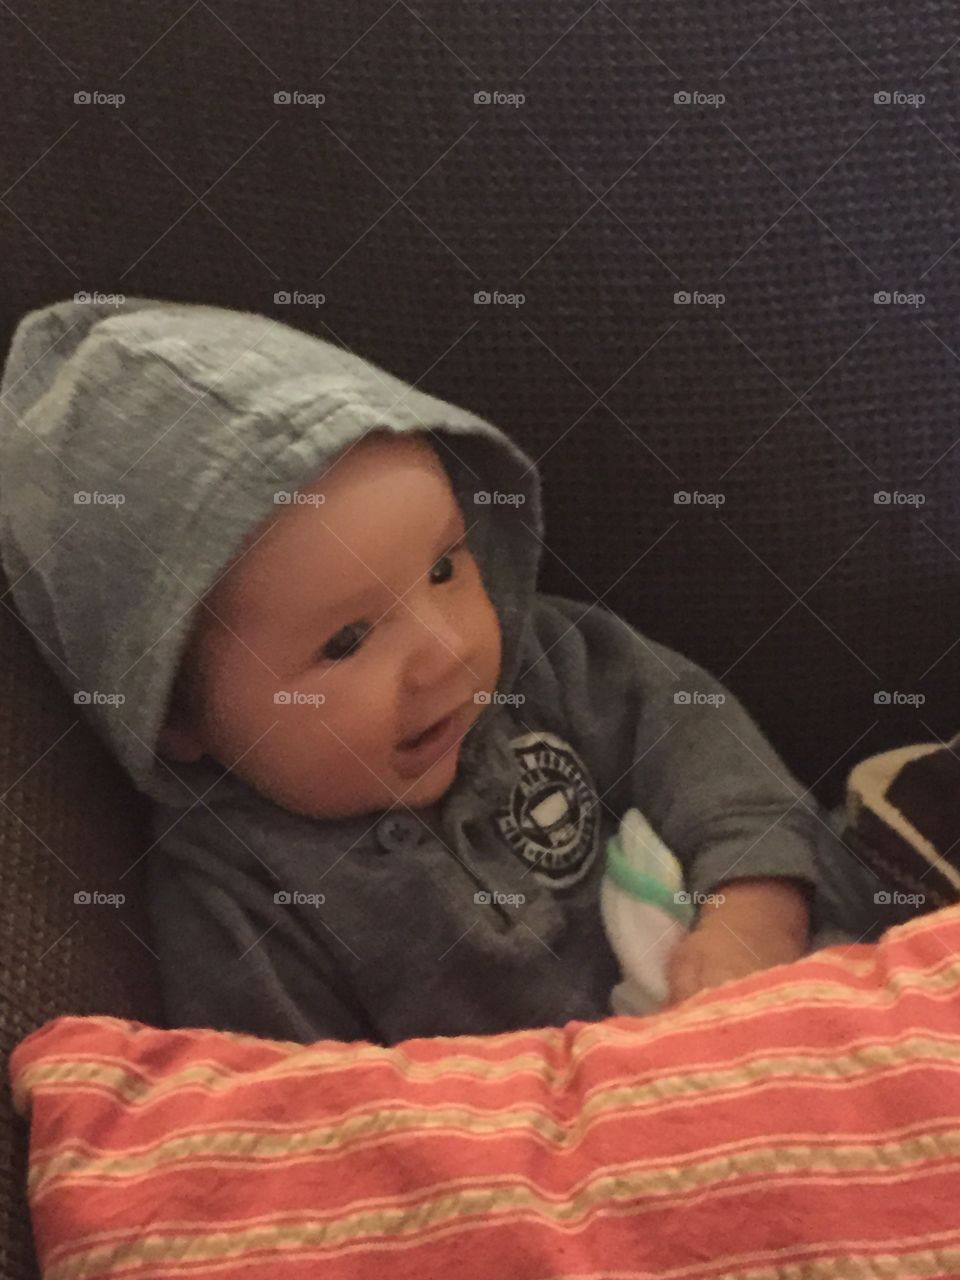 Two month old baby with a little hoodie on semi sitting on couch.